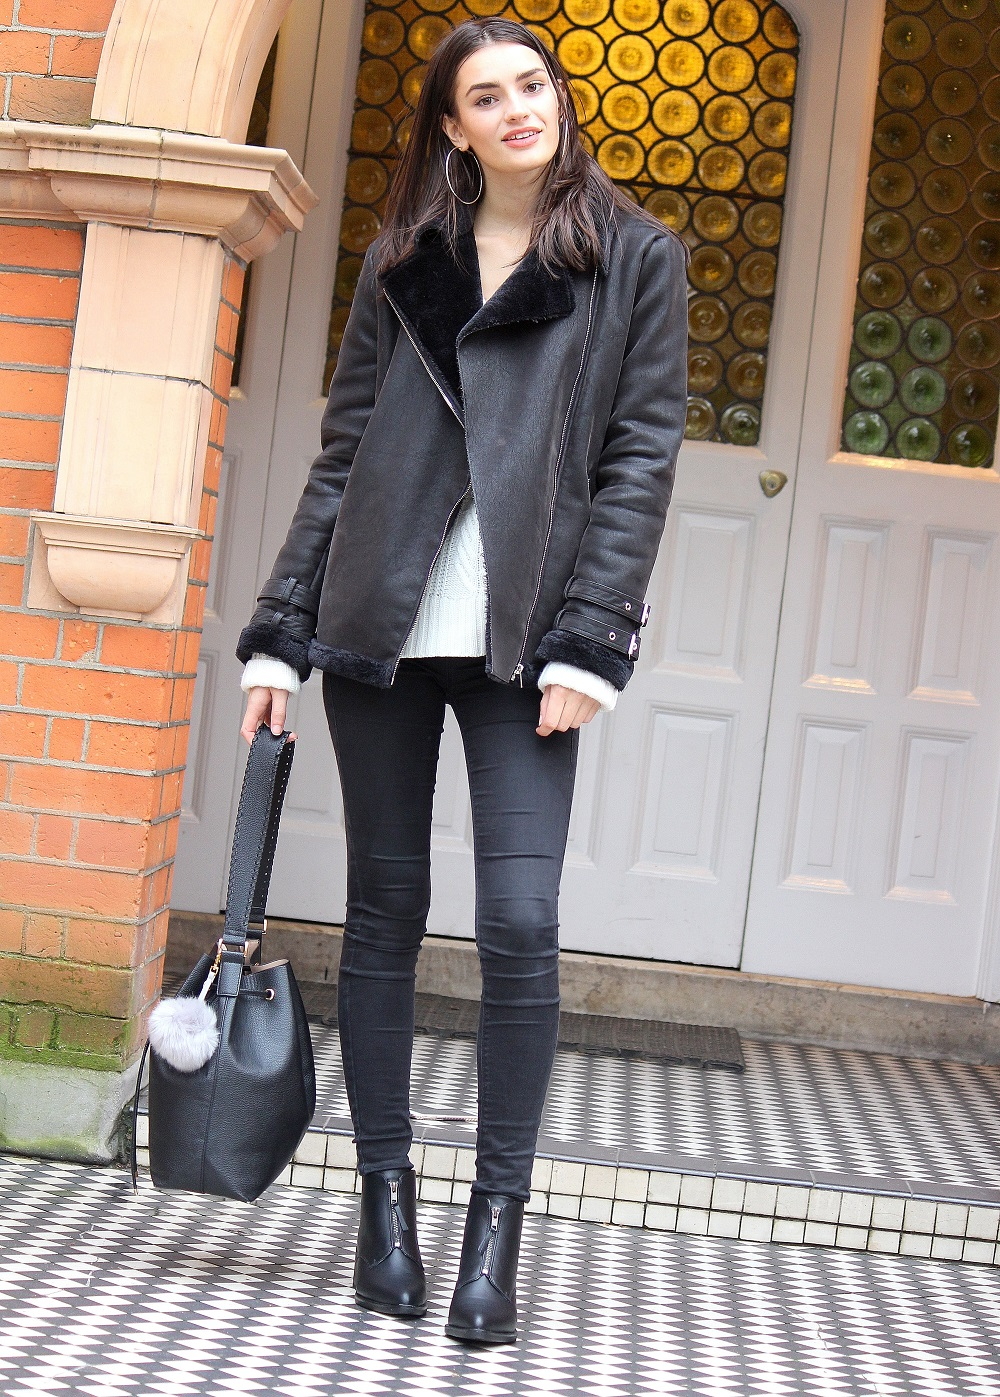 peexo fashion blogger styling monochrome